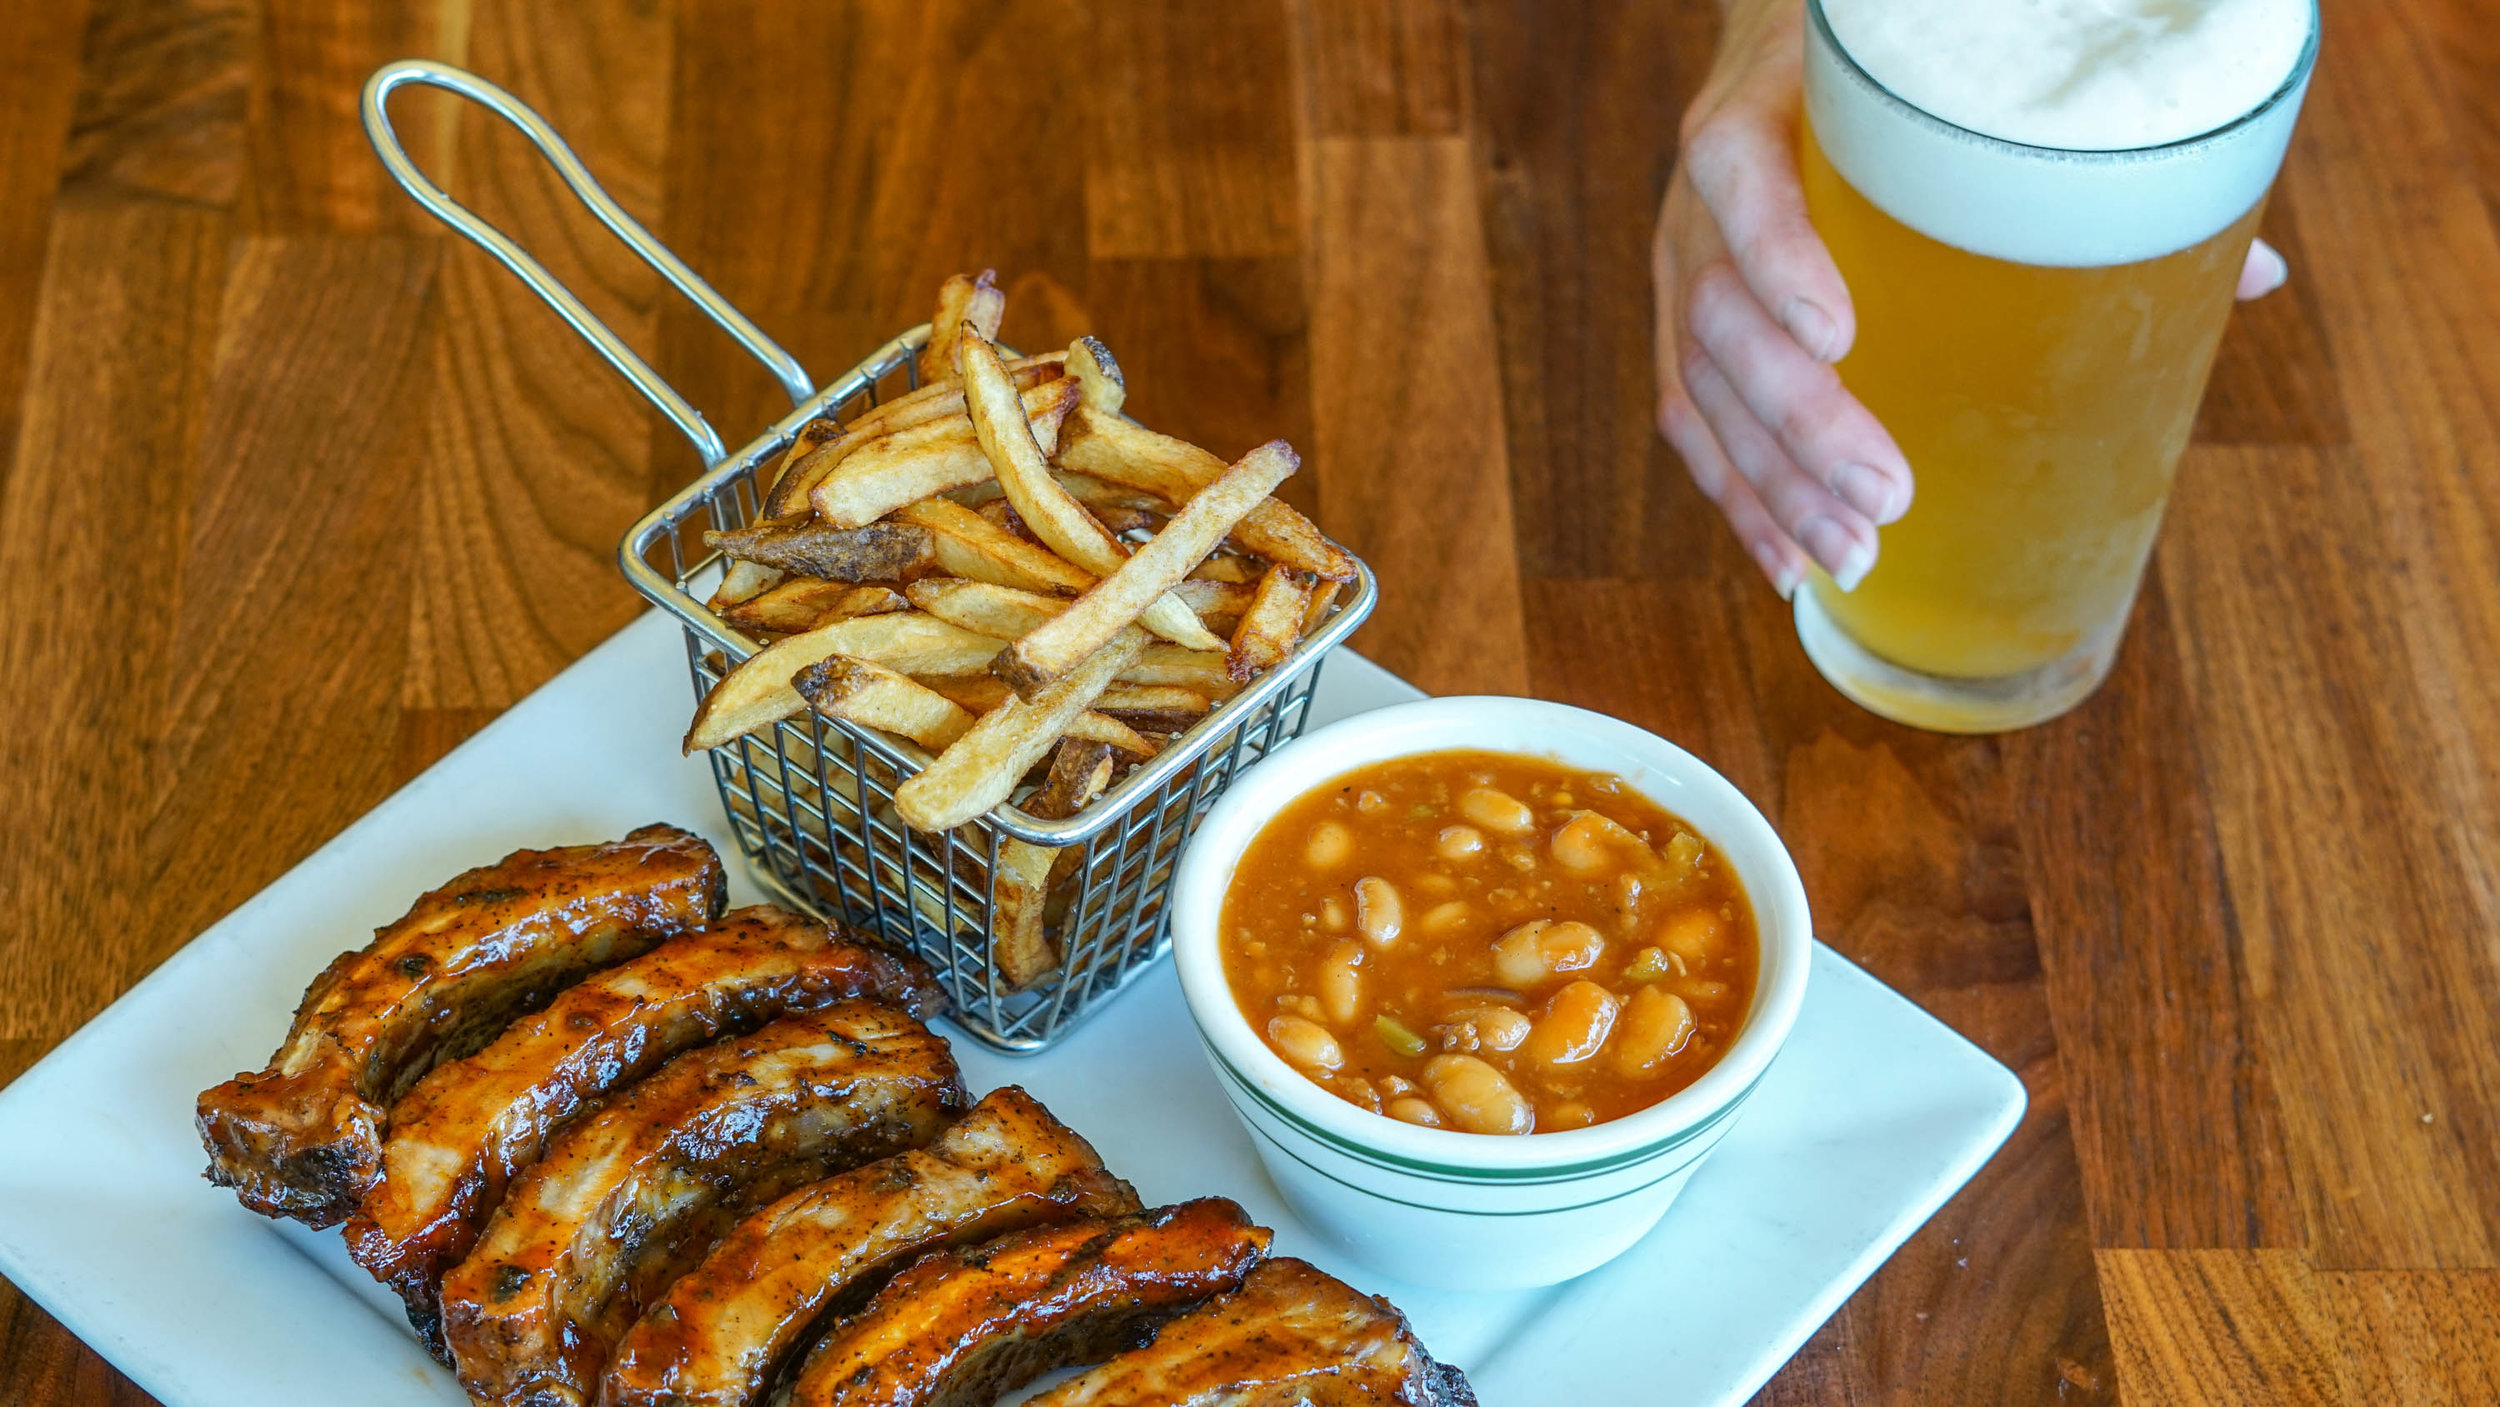 house smoked ribs, beans, fries, glass of beer